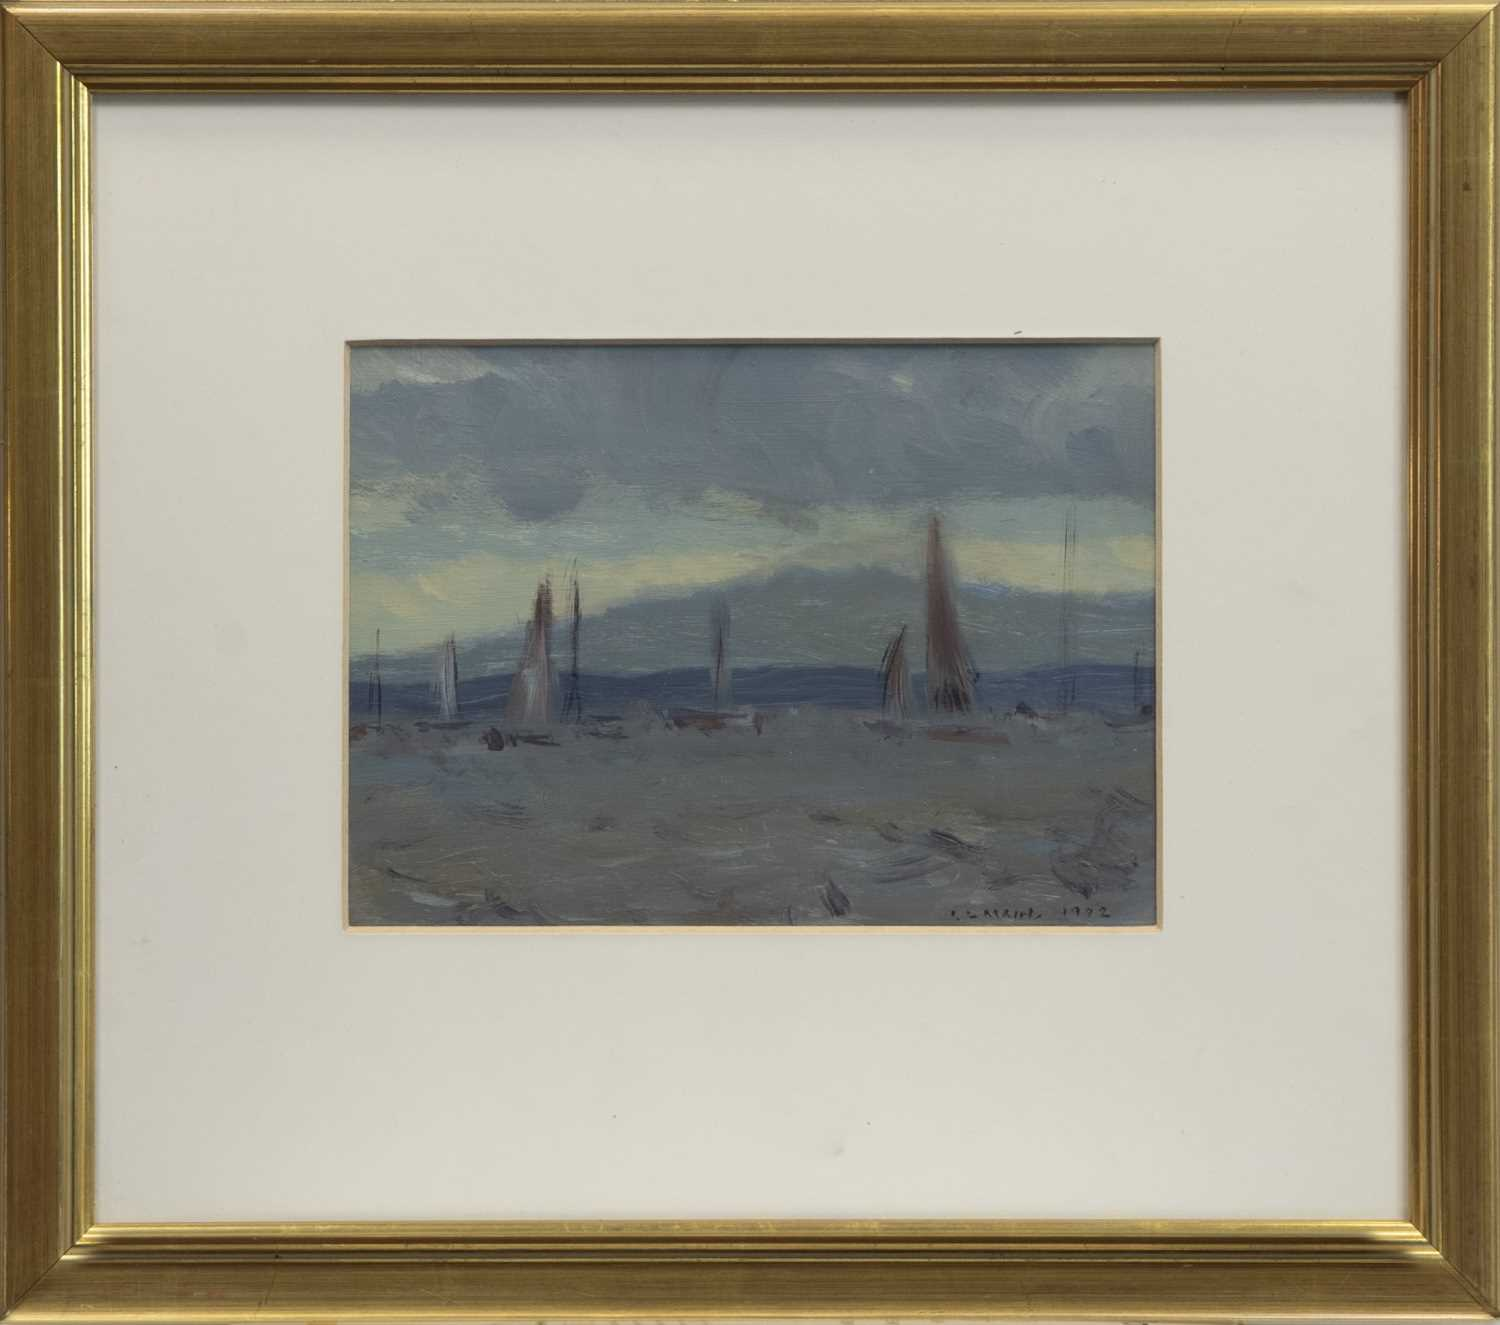 Lot 154 - BEFORE THE RACE, INVERKIP, AN OIL BY IRENE LESLEY MAIN